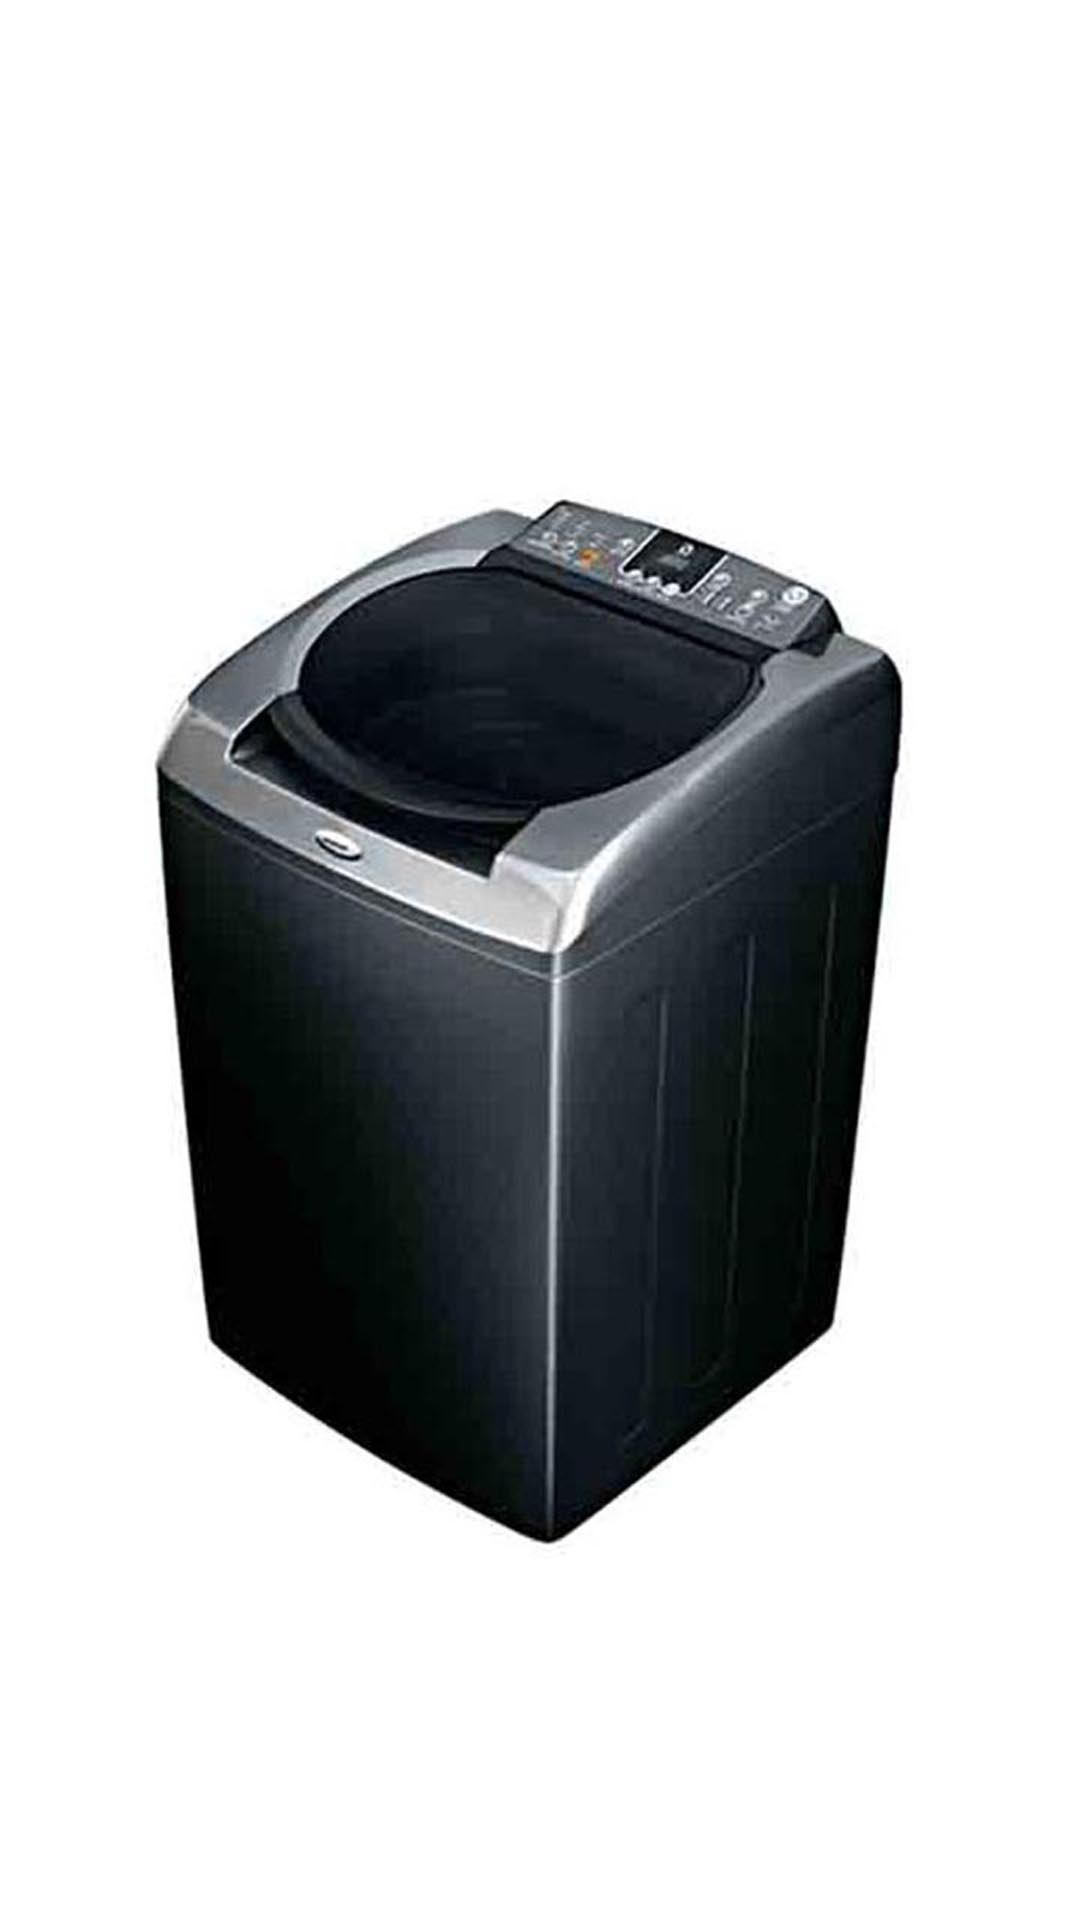 Whirlpool 8 kg Fully Automatic Top Loading Washing Machine Bloomwash 8013H